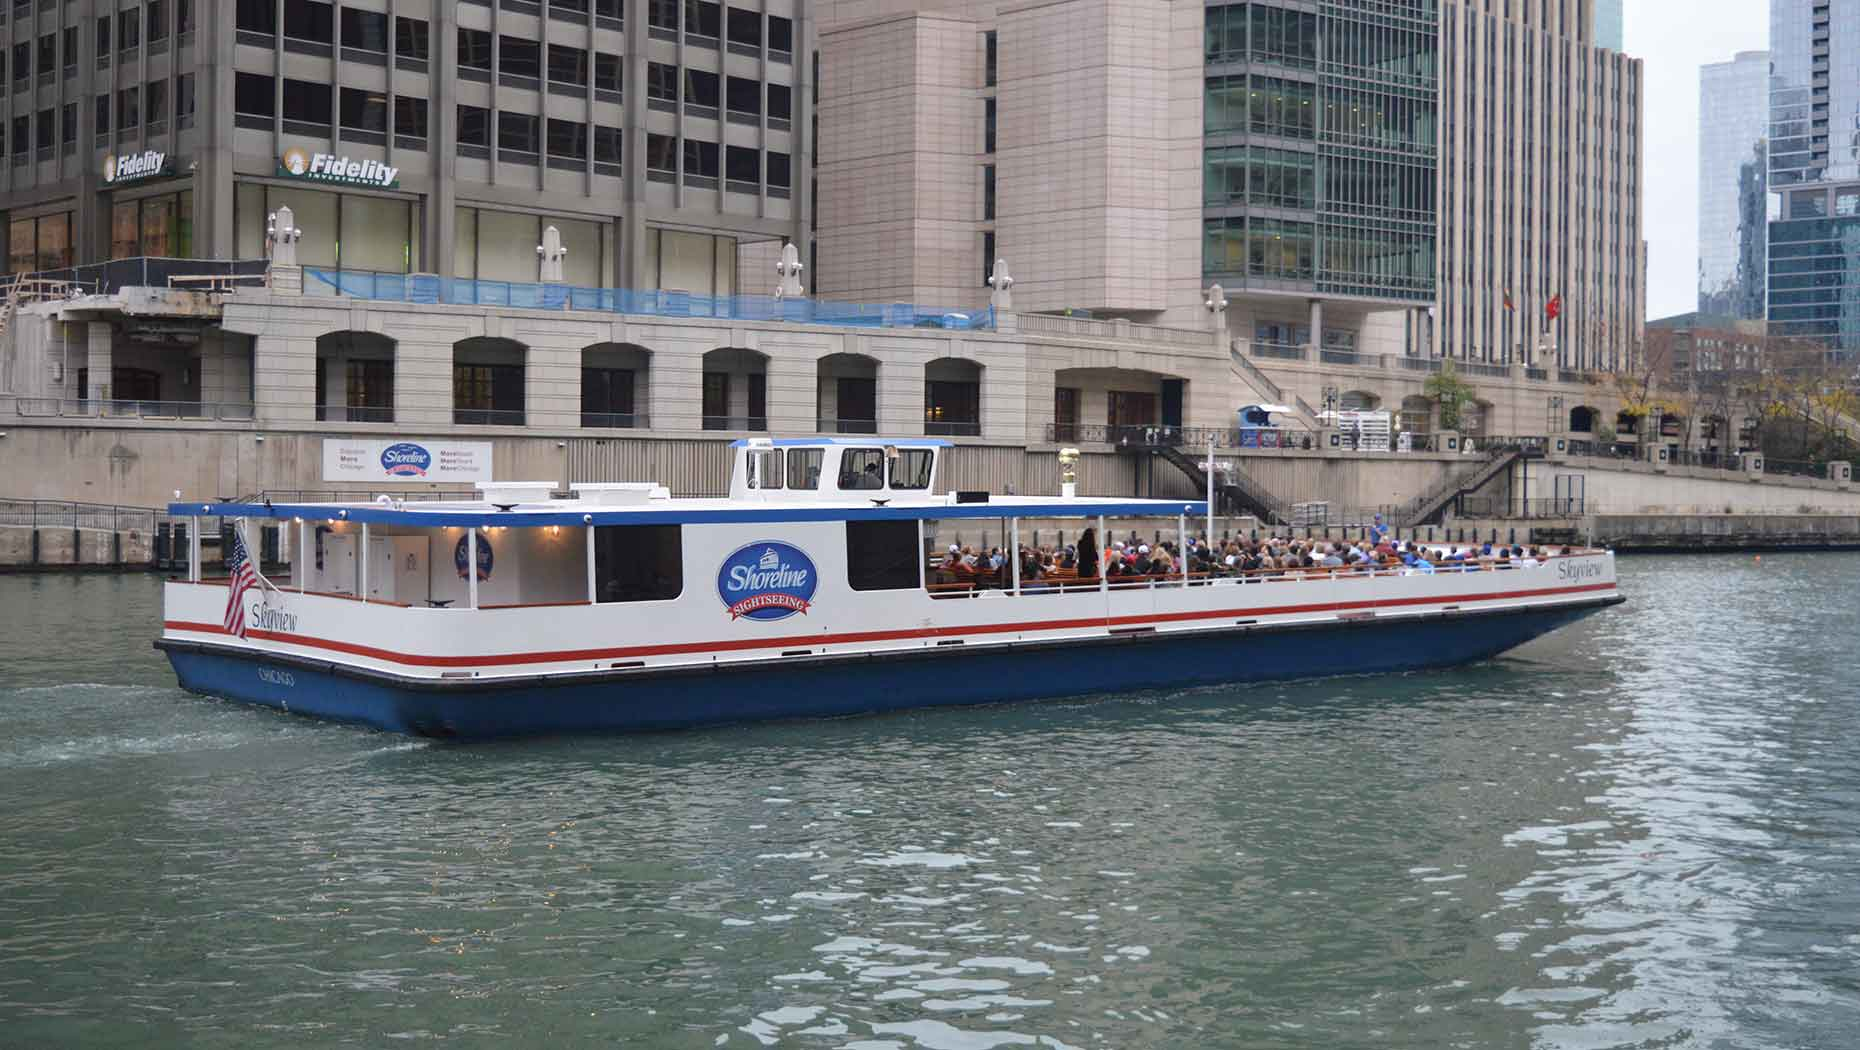 Volvo Penta Powers New Shoreline Sightseeing Boat in Chicago